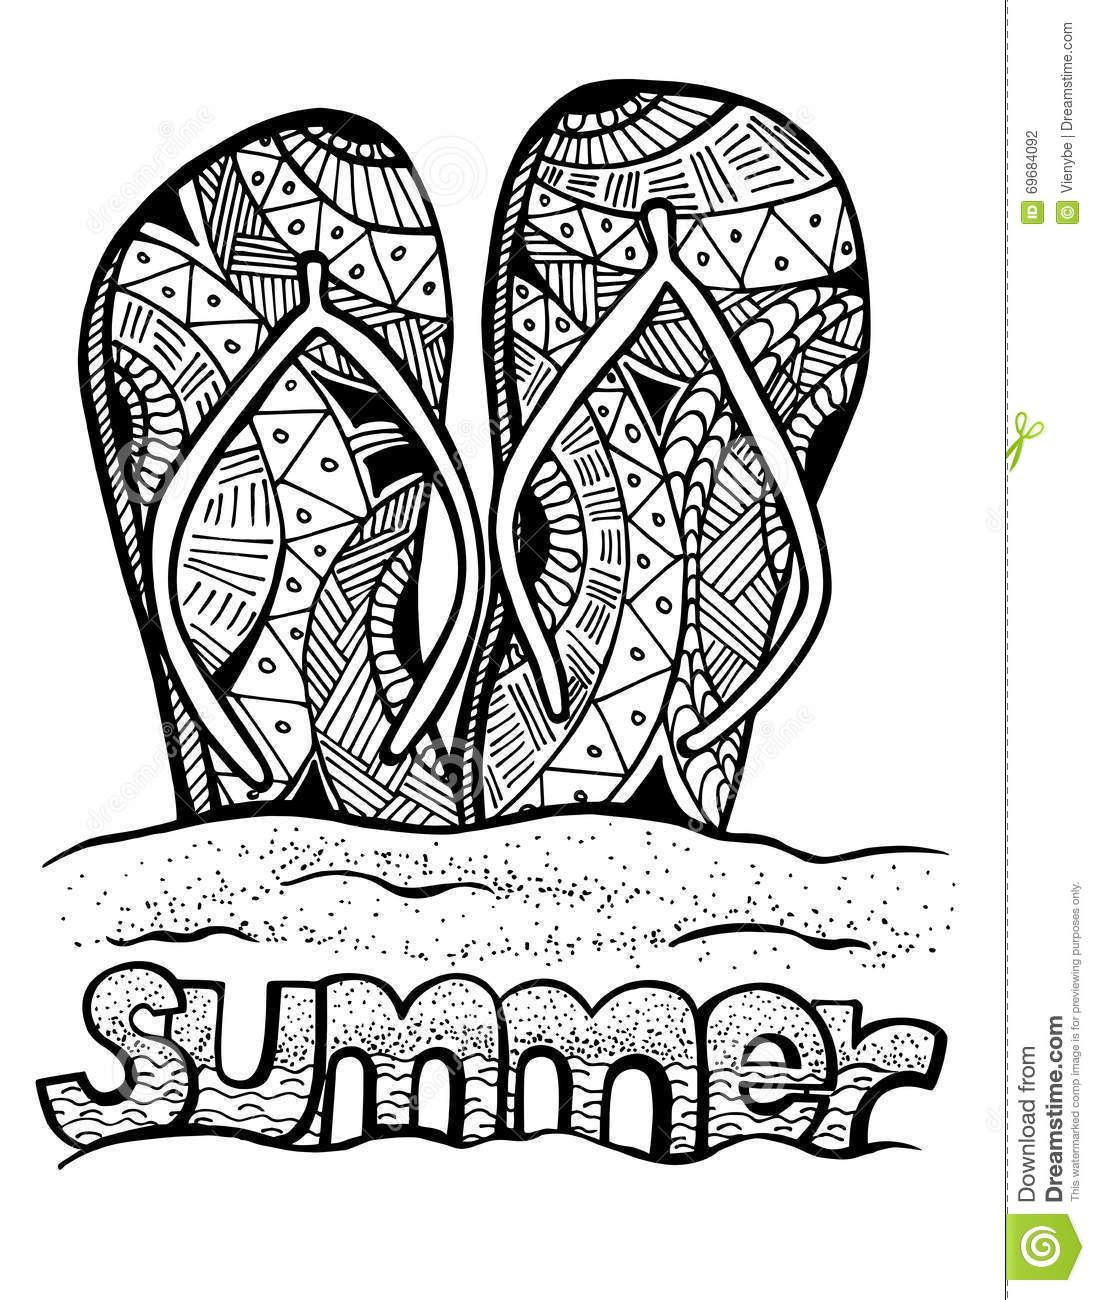 Pin By Janet On Zentangle Summer Coloring Pages Beach Coloring Pages Coloring Pages